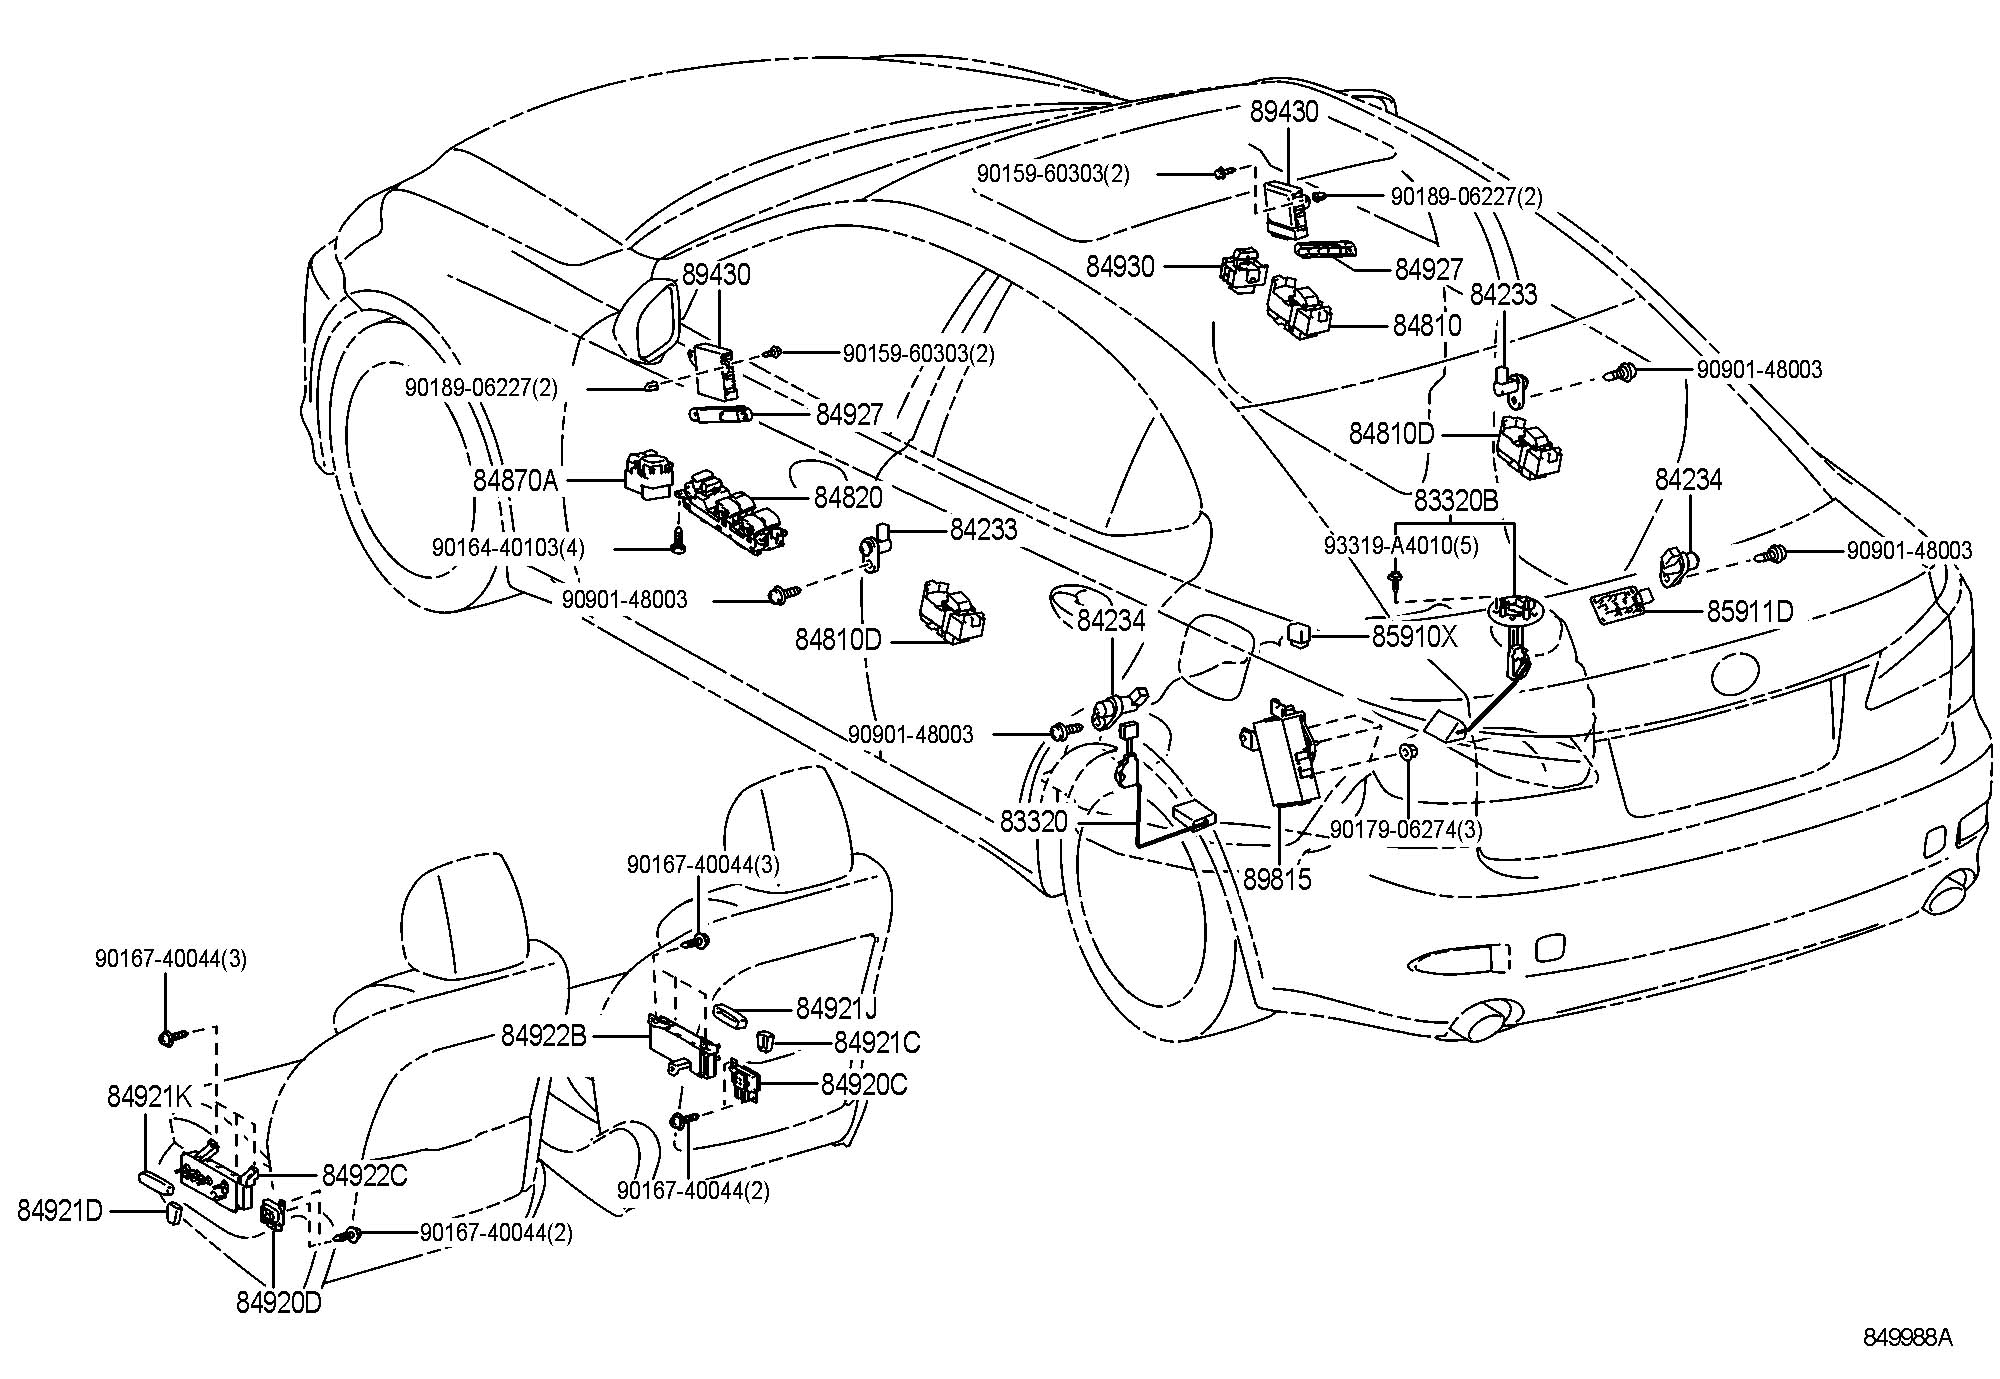 fuse box diagram 96 lexus gs300